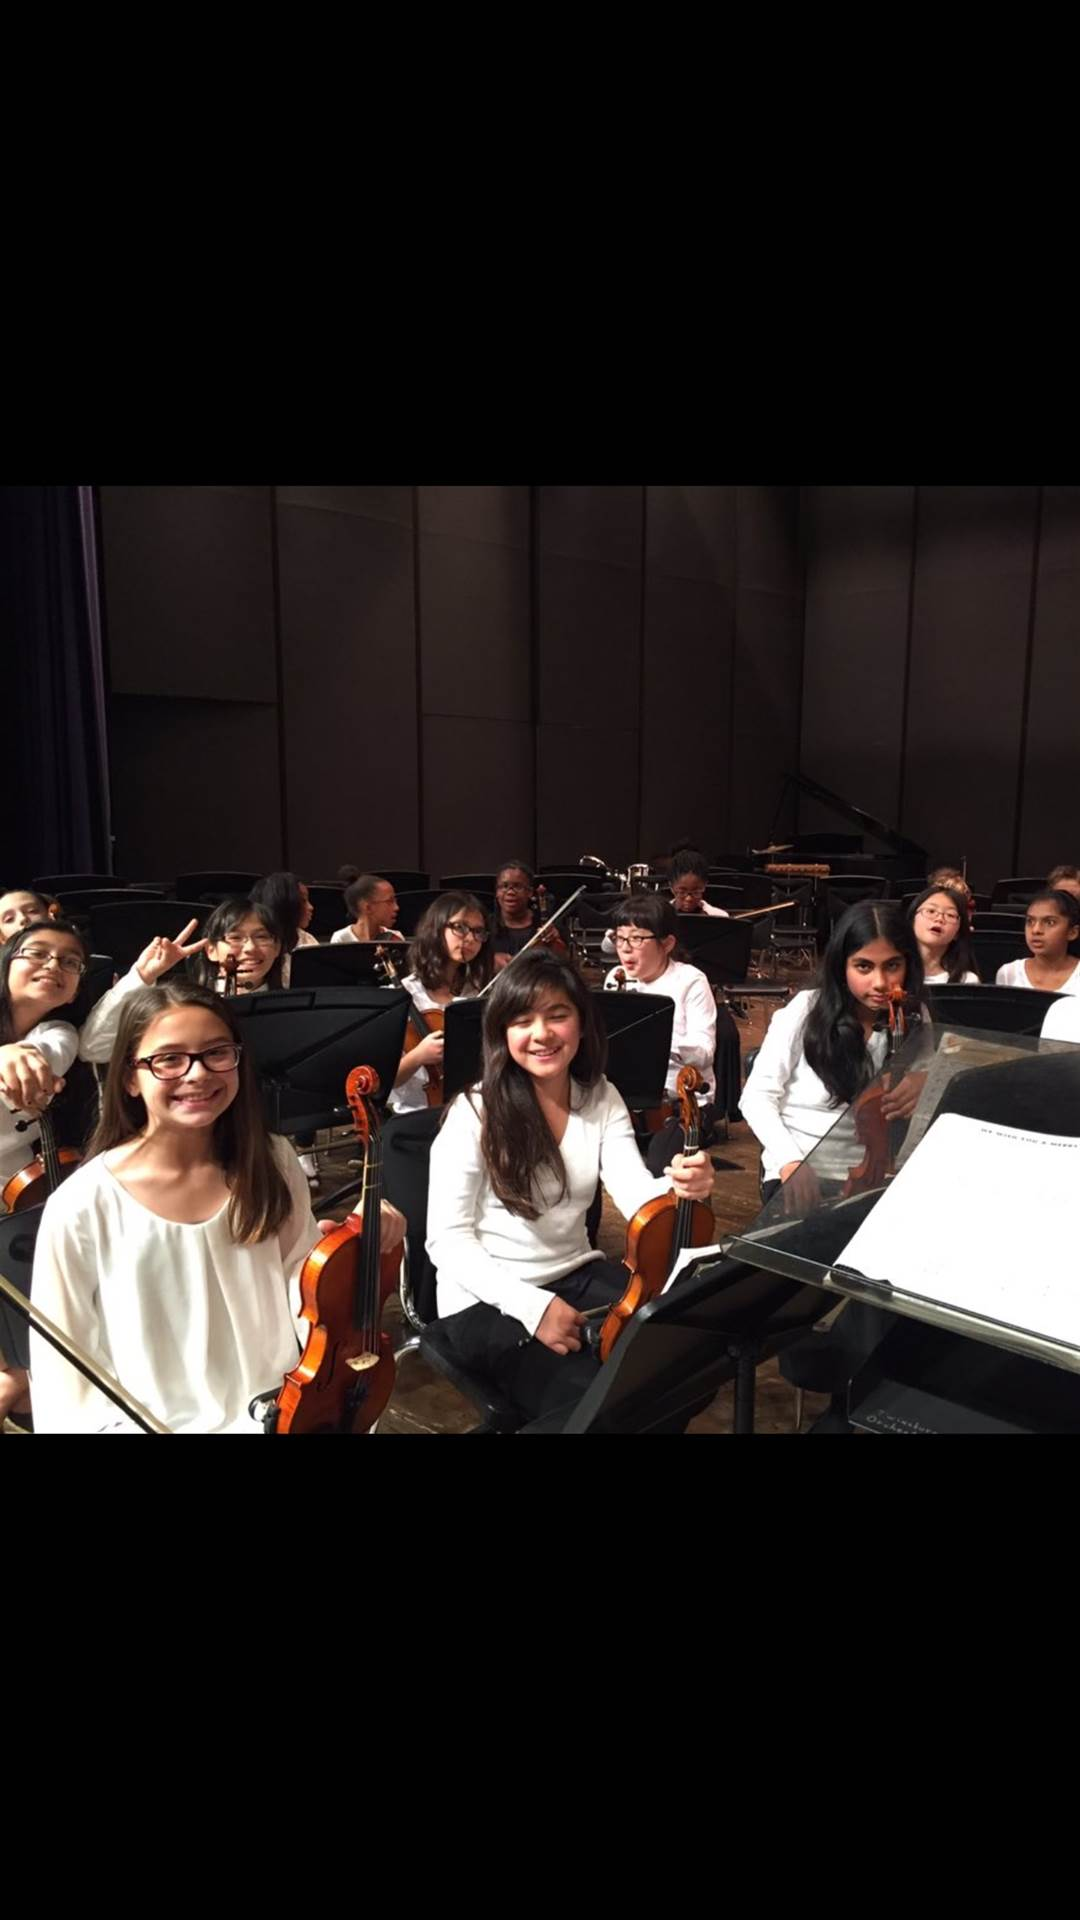 Students waiting to perform.